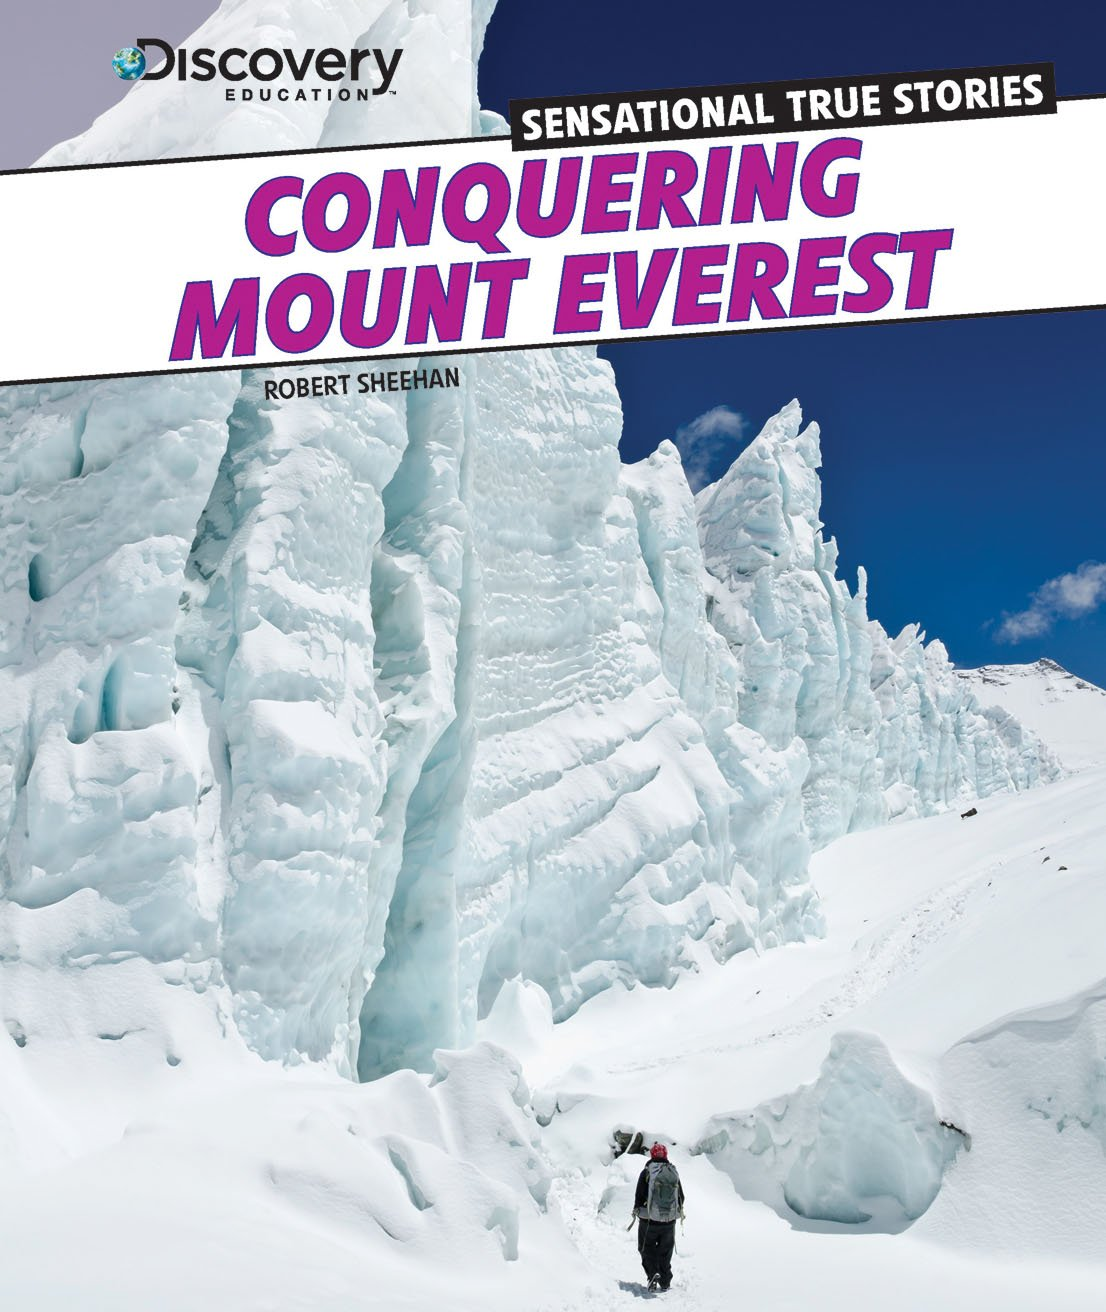 Conquering Mount Everest (Discovery Education: Sensational True Stories) pdf